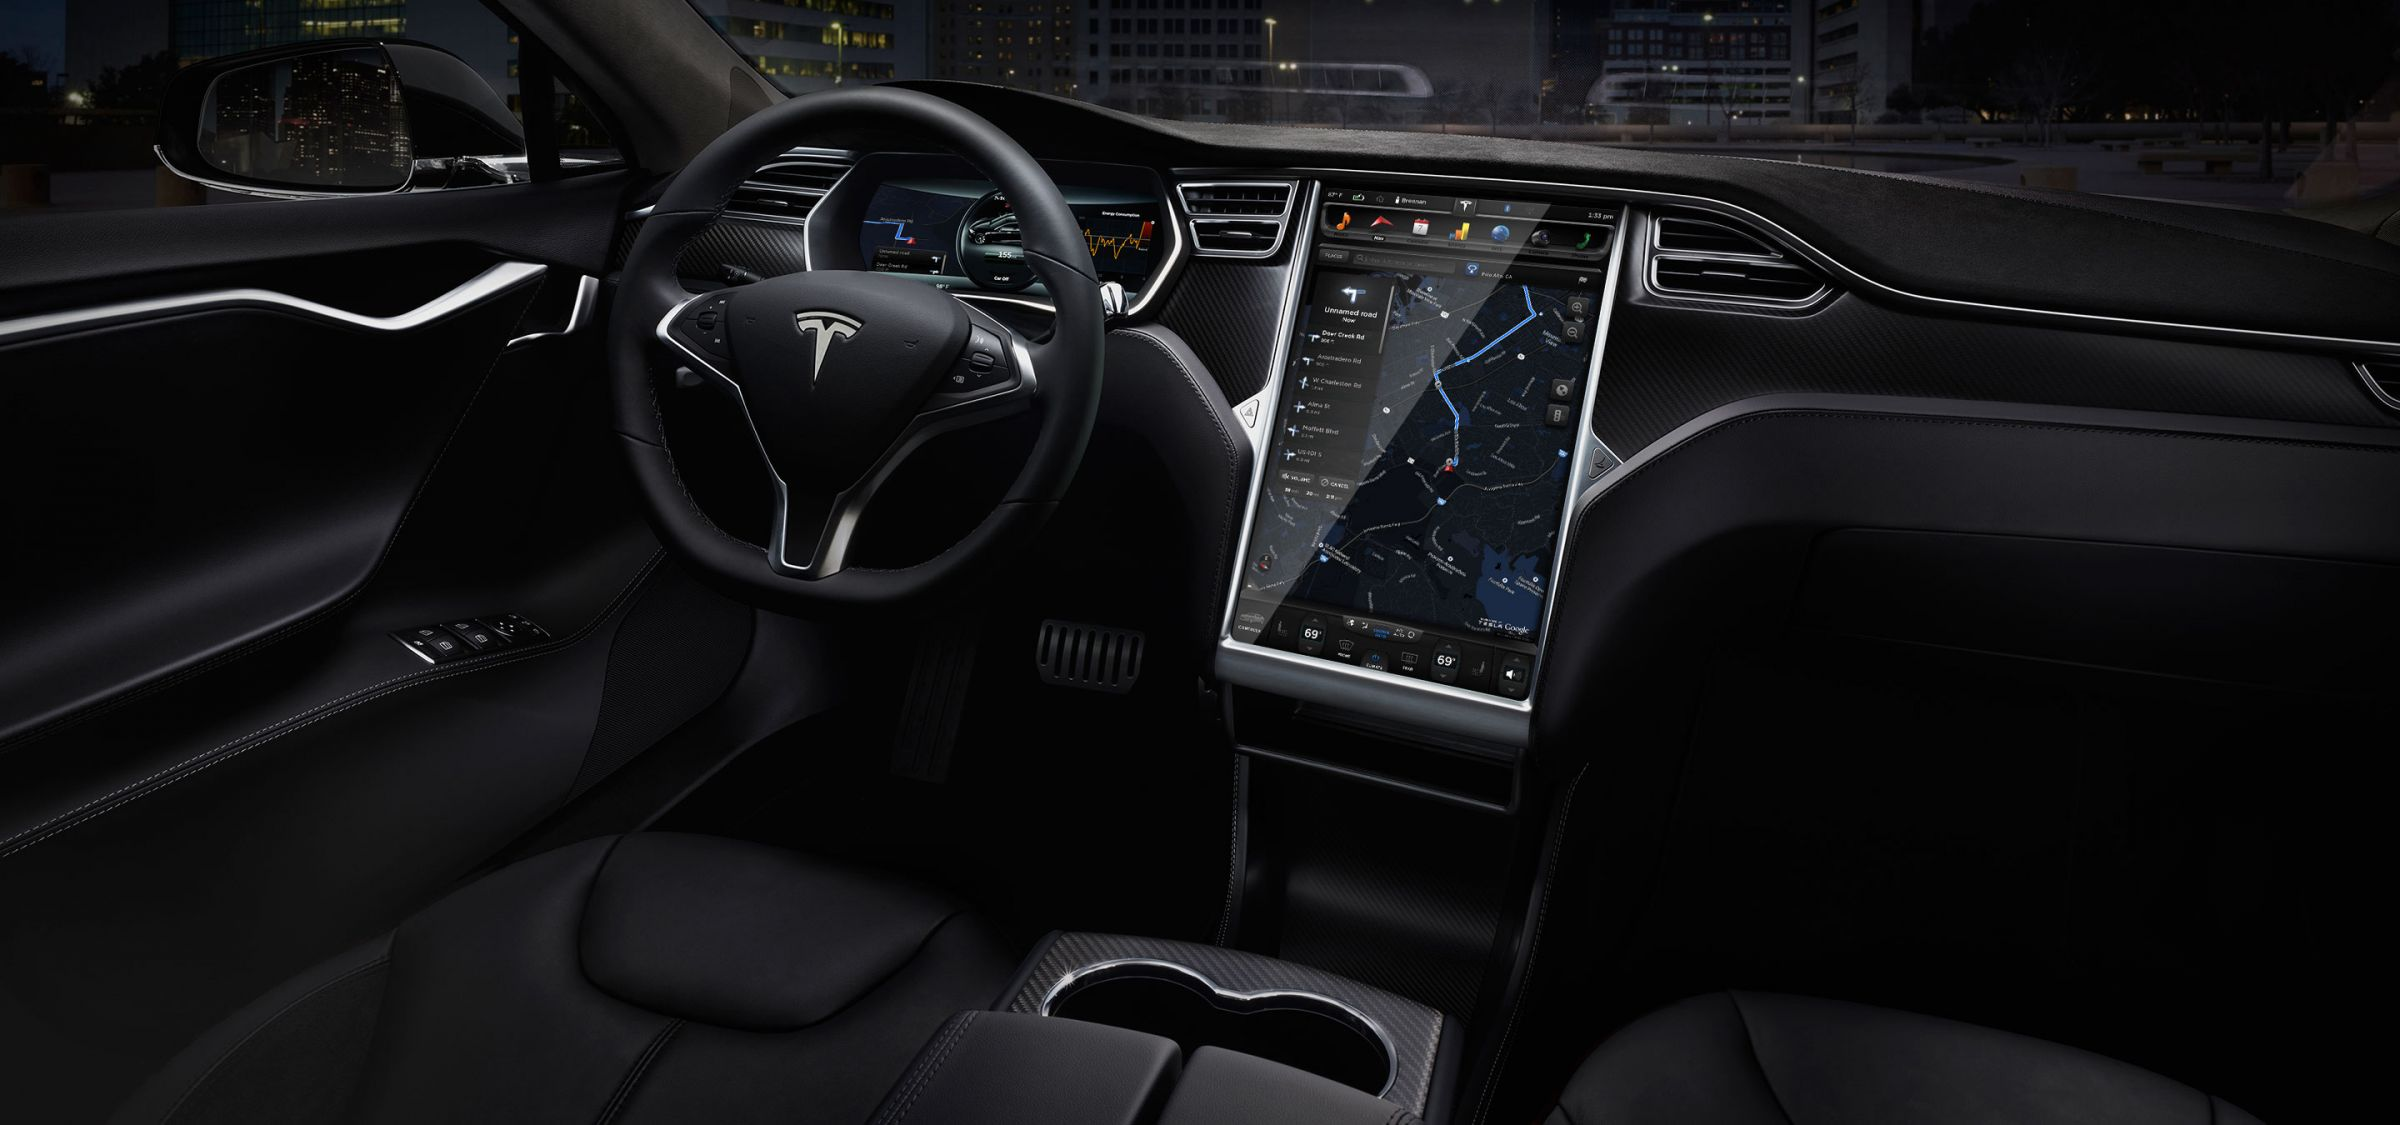 Tesla couldn't have made the car simpler to drive, as there's no gearbox - not even an automatic